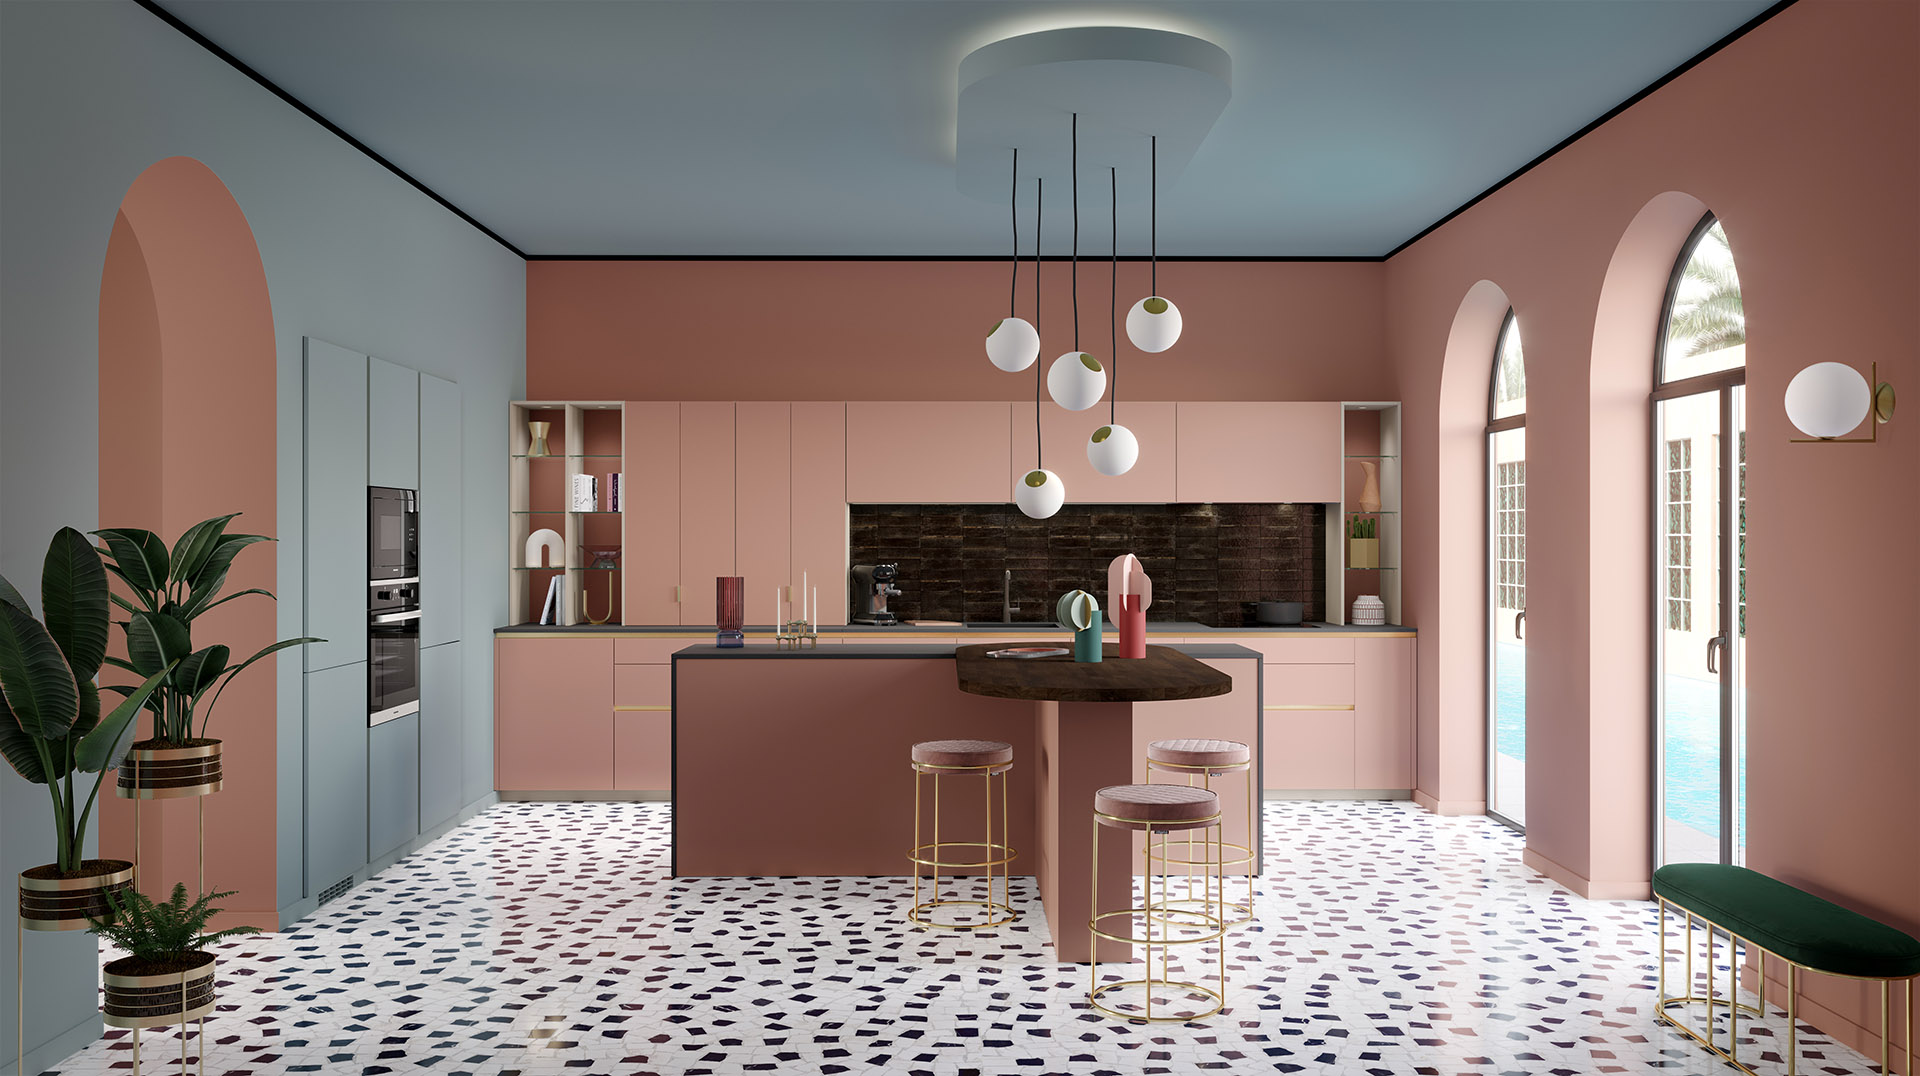 3D image of a modern pink and gray kitchen